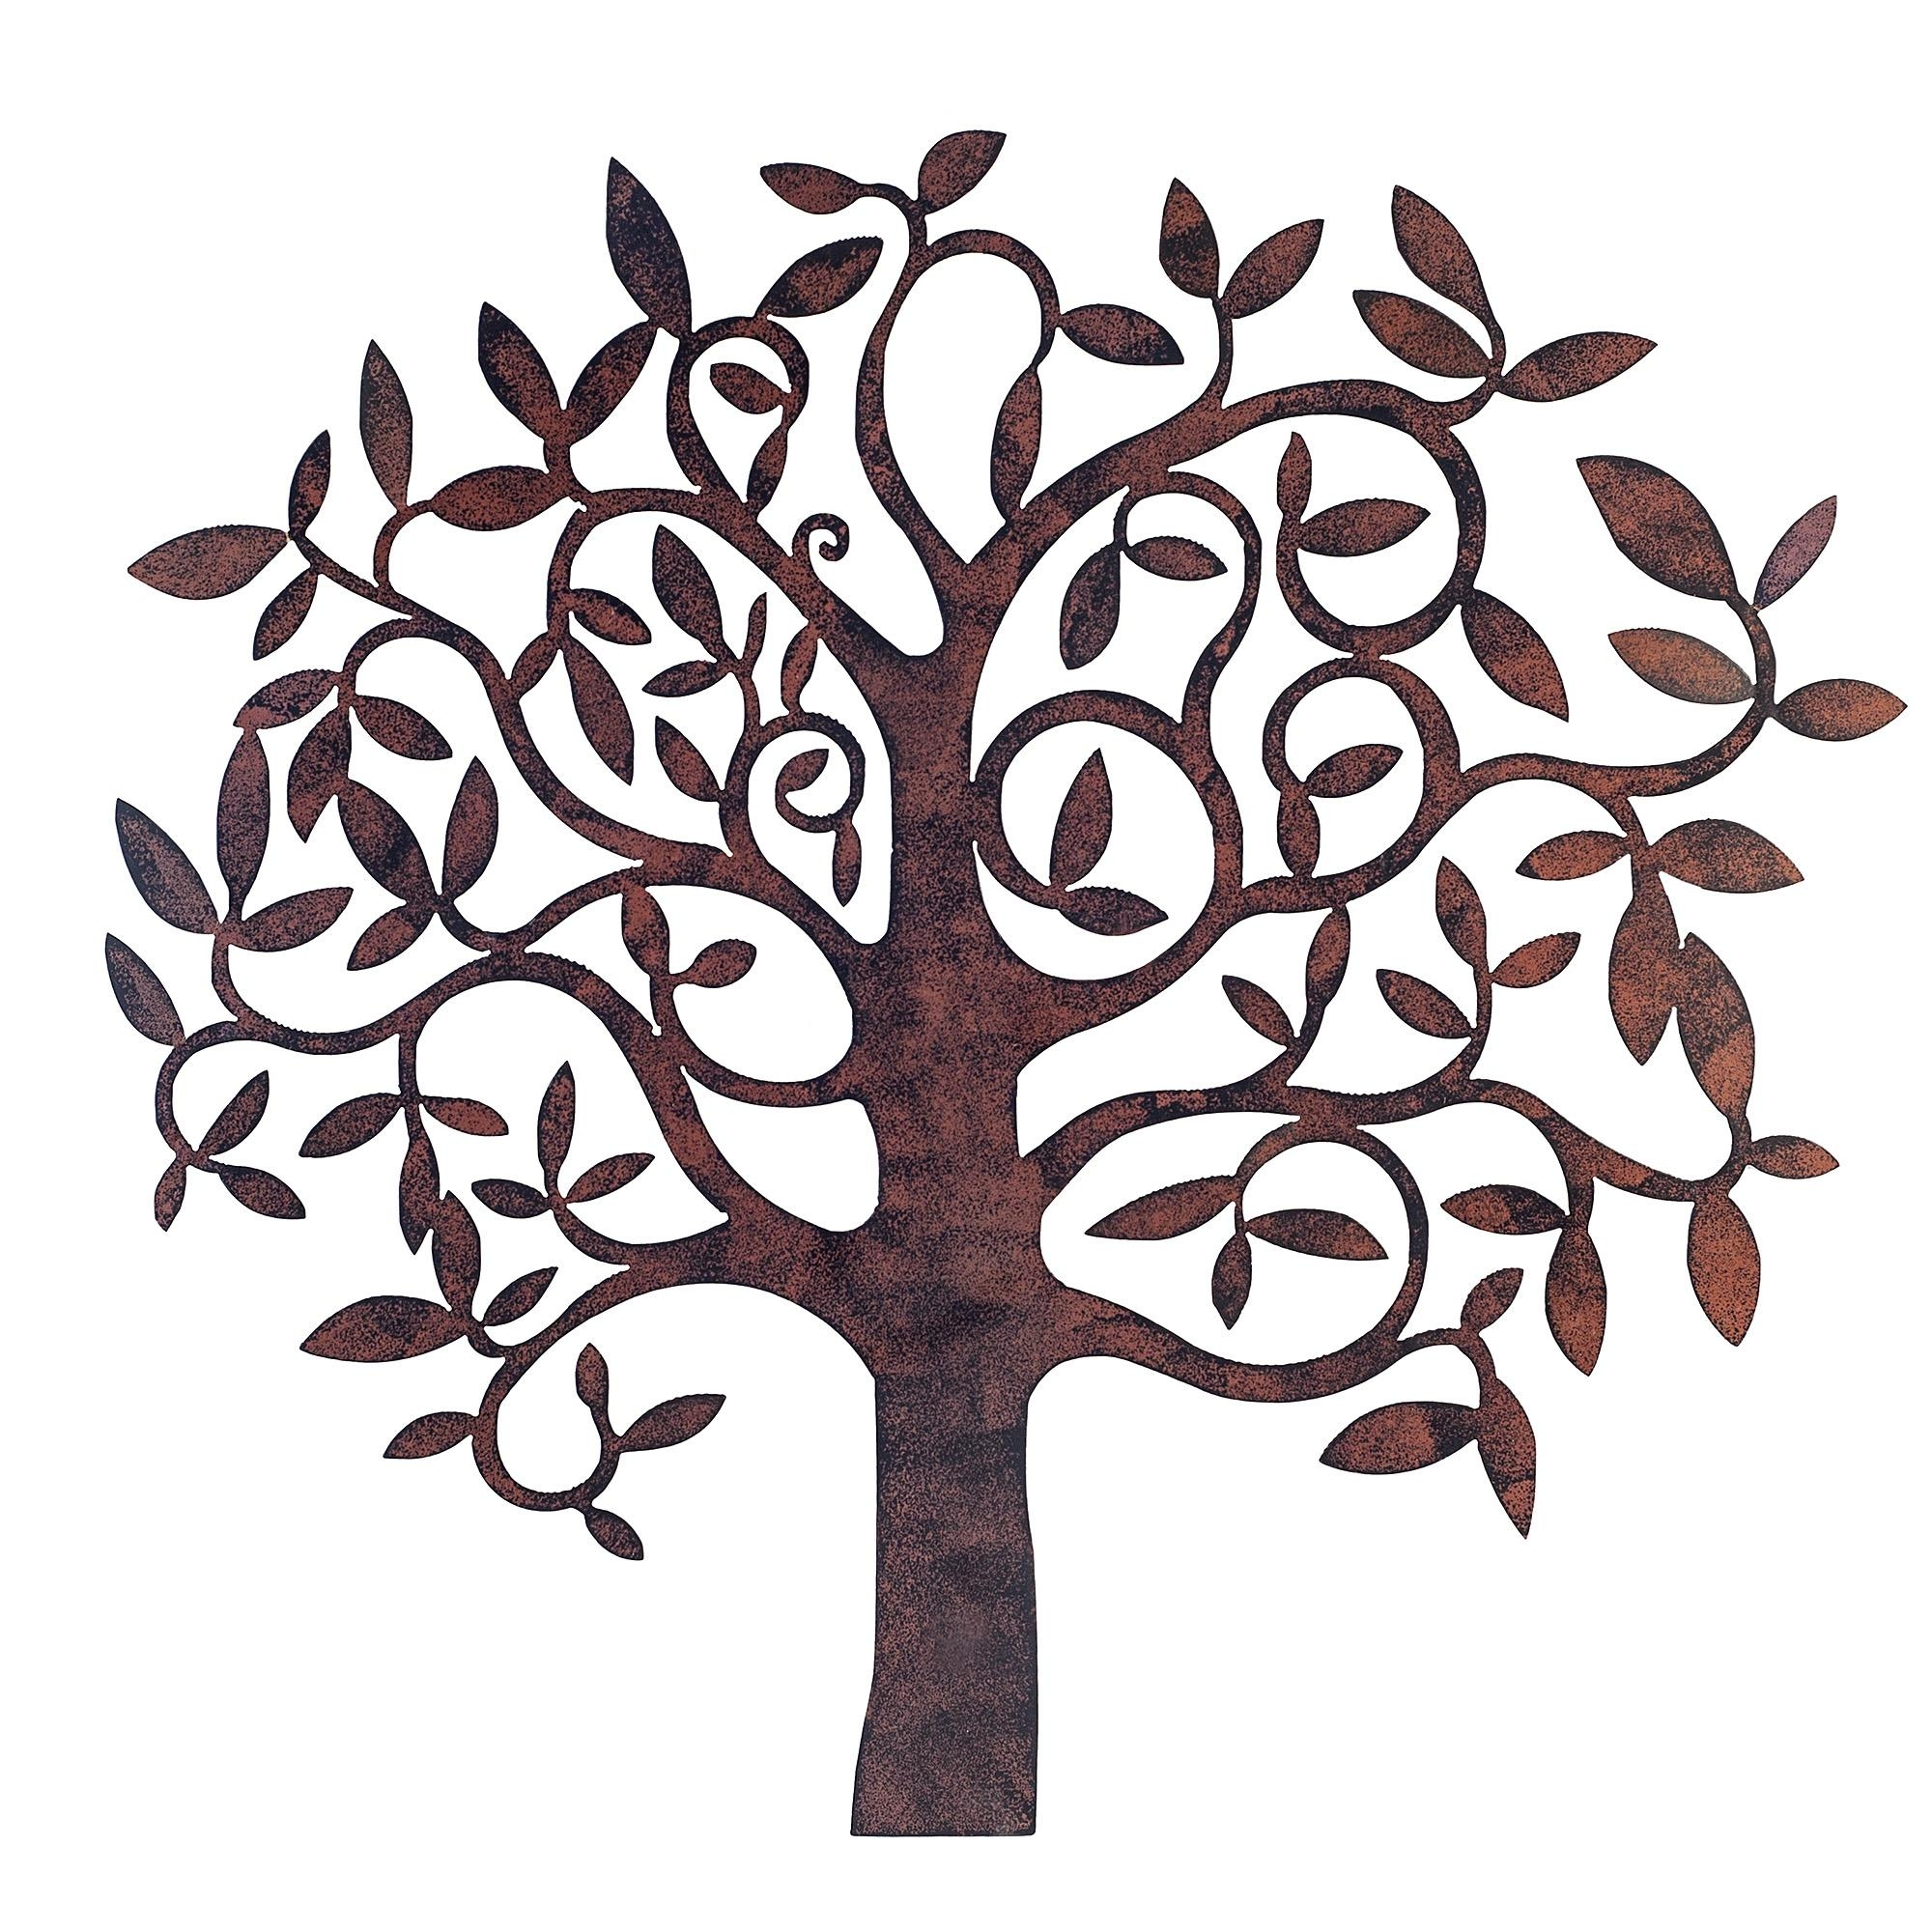 Stupendous Large Metal Tree Wall Decoration 22 Giant Metal Tree In Outdoor Metal Art For Walls (Image 14 of 20)